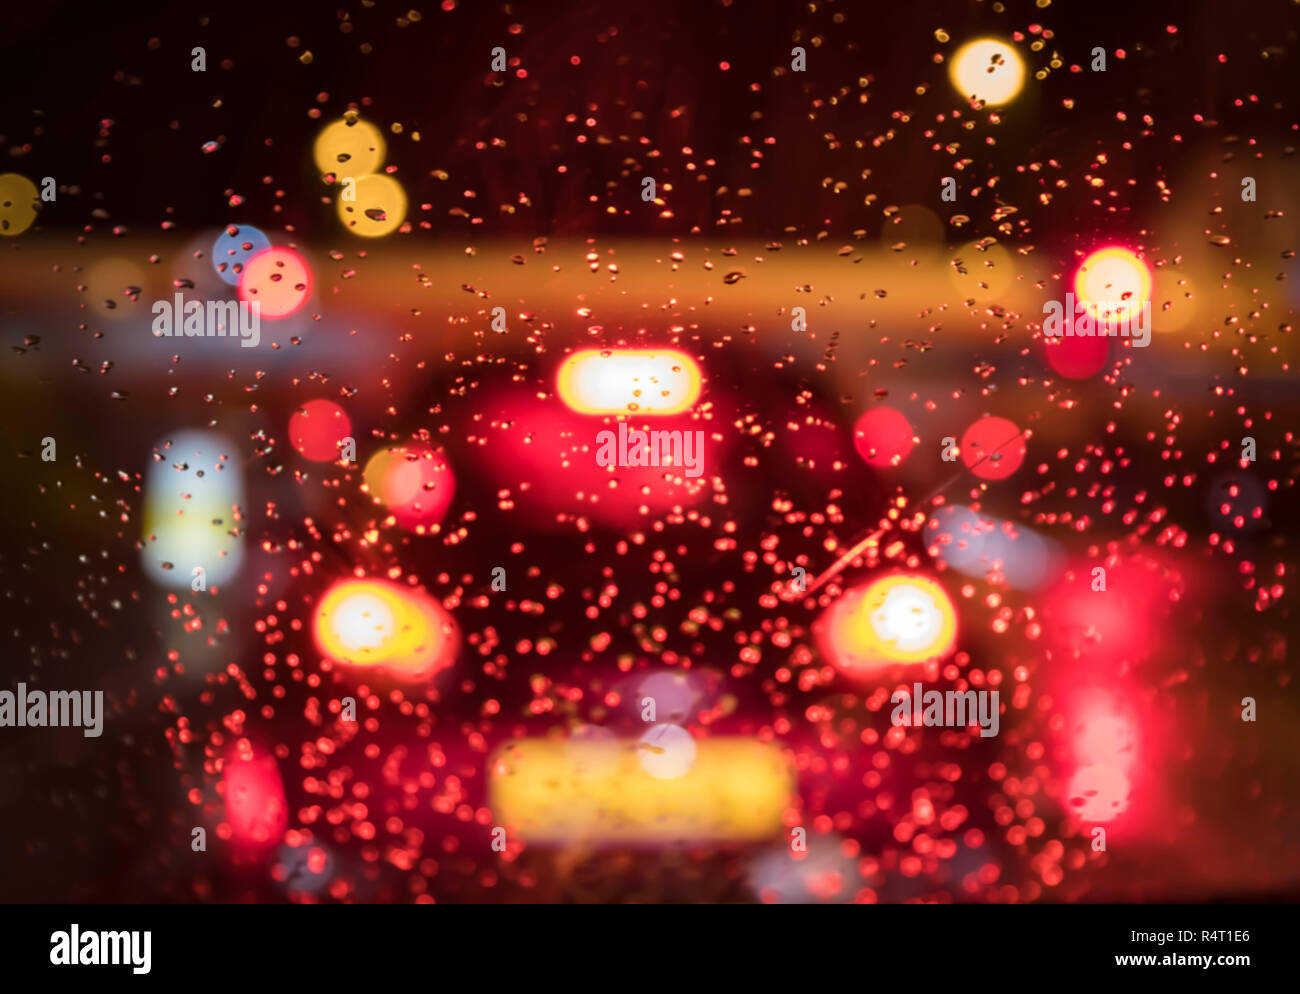 Car in front braking hard in wet weather while rain falls on the road and windscreen. Vehicle braking hard while raining. Car stopping. - Stock Image